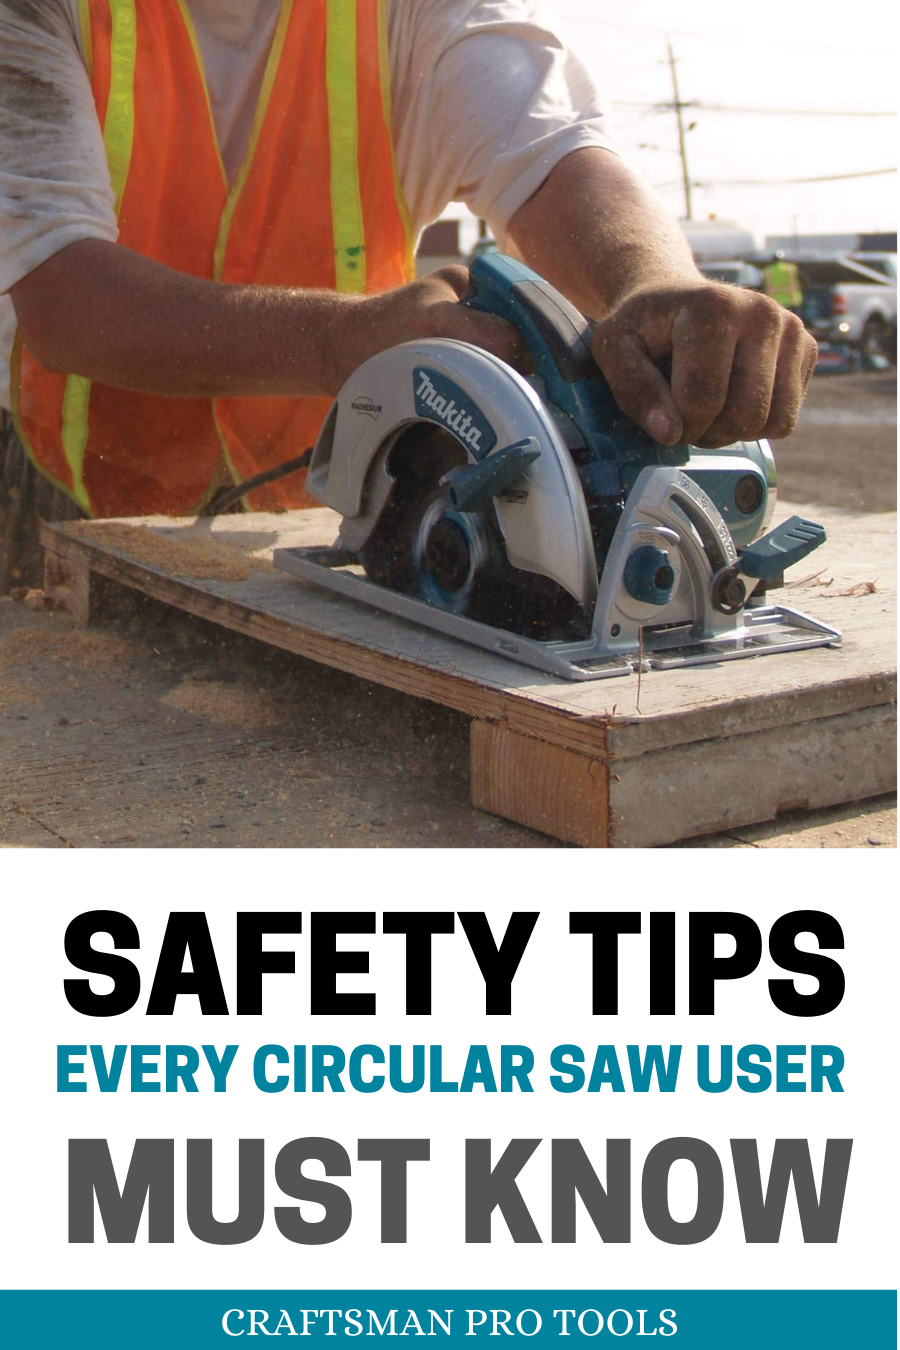 11 Essential Circular Saw Safety Tips You Should Know In 2020 Circular Saw Safety Tips Circular